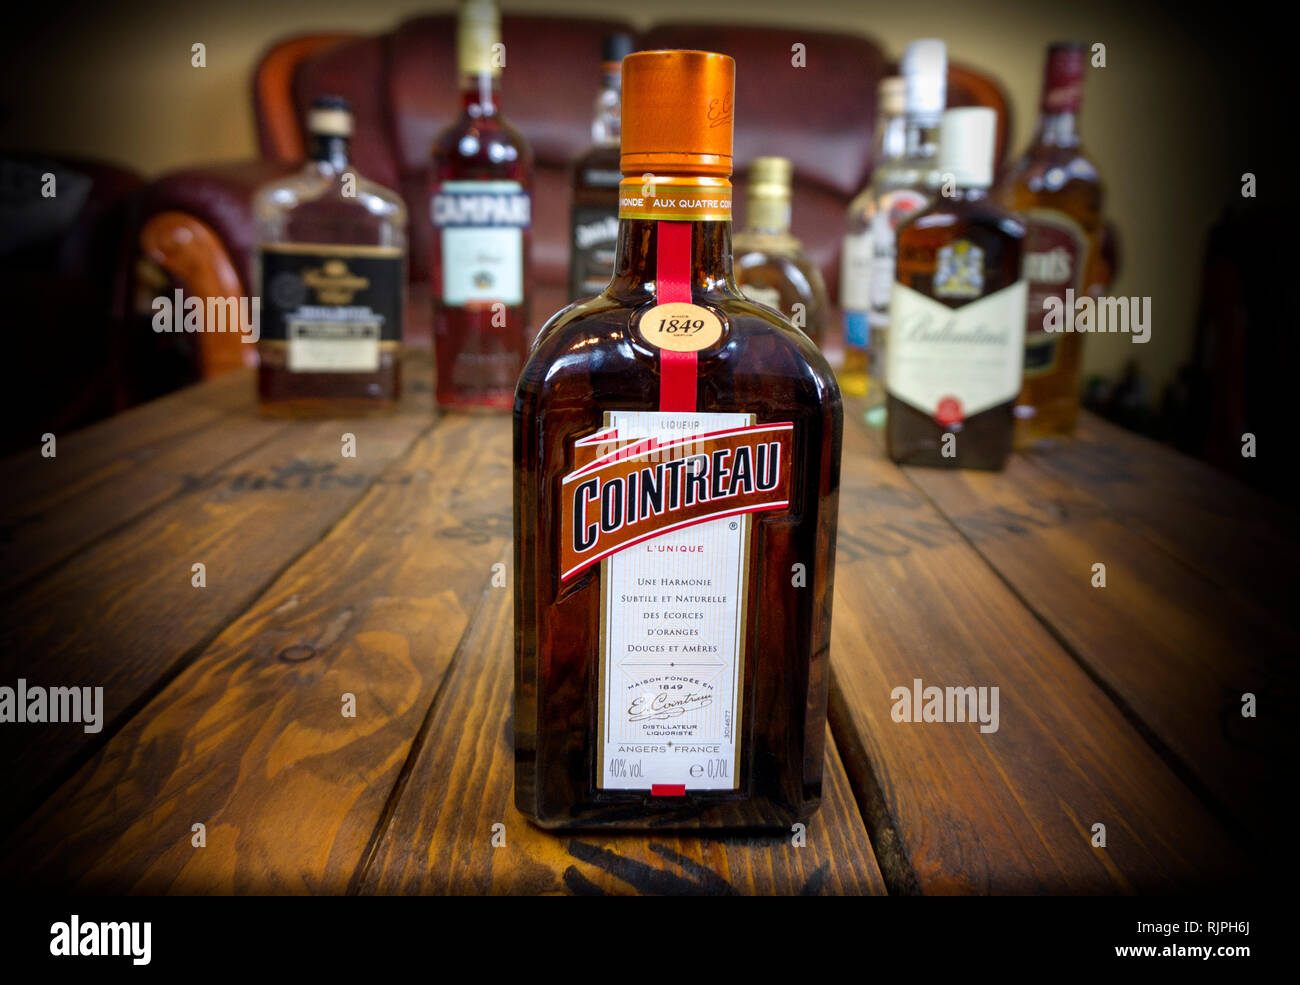 Alcoholic french ligueur cointreau outstanding on wooden table with other alcoholic beverages illustrative editorial - Stock Image